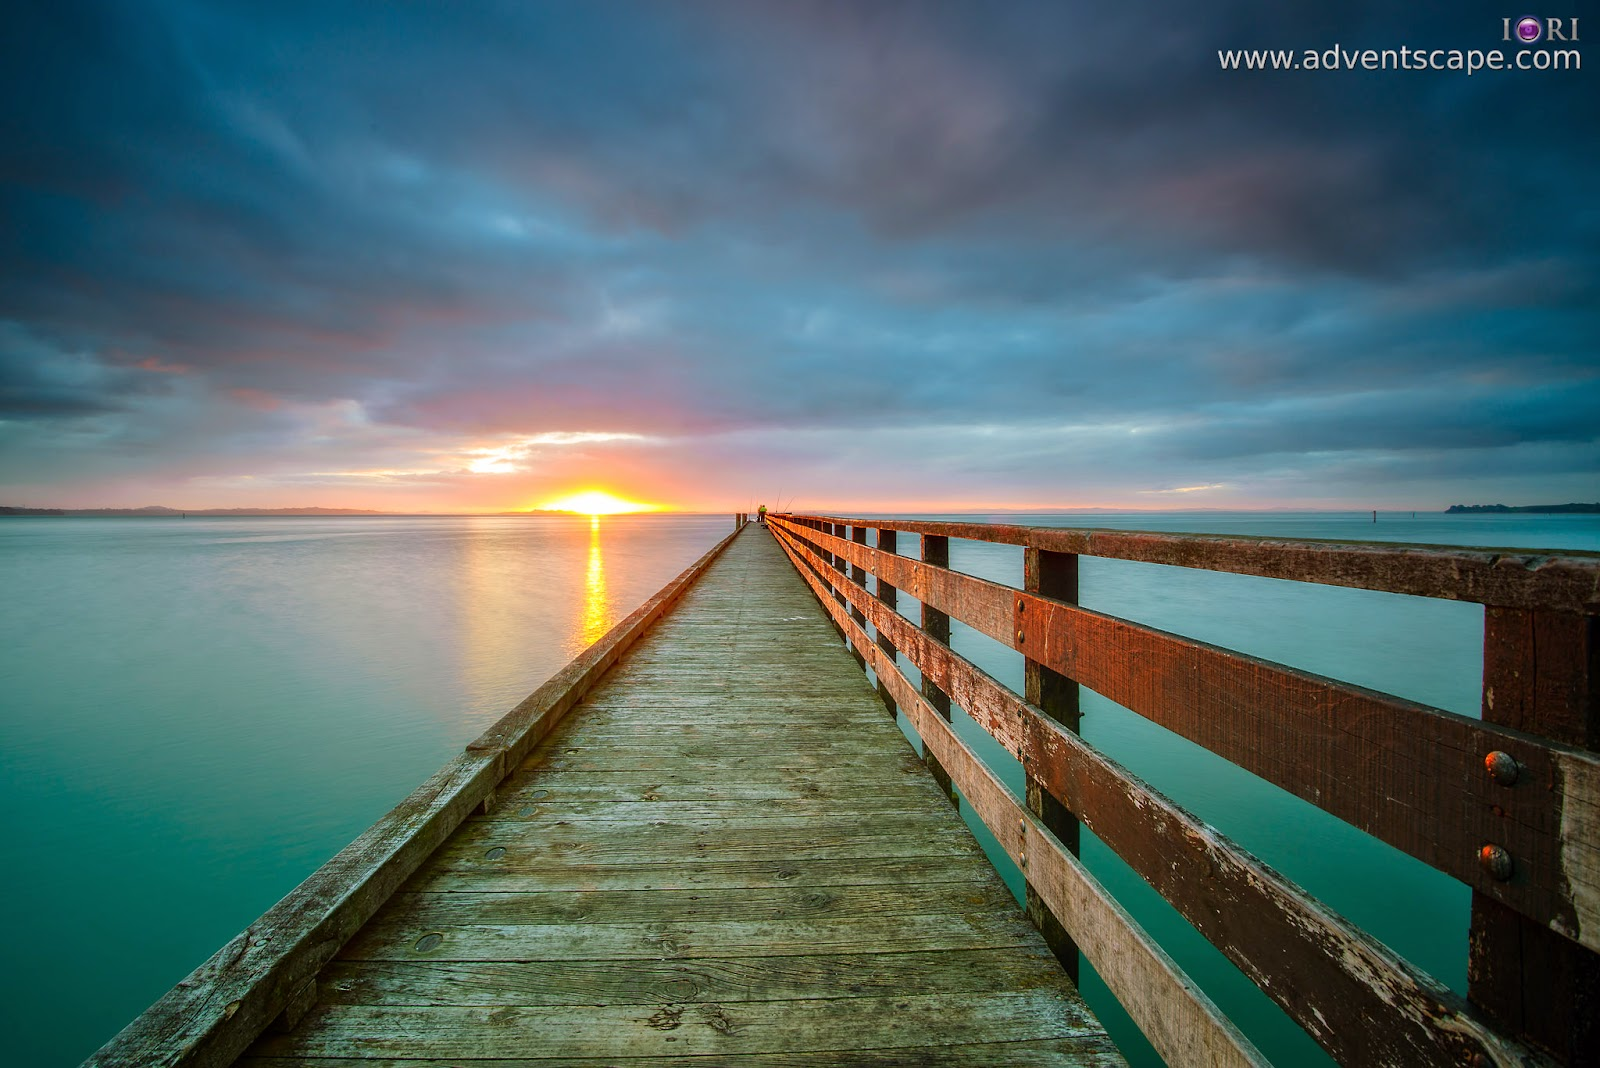 Philip Avellana, iori, adventscape, Cornwallis, jetty, seascape, landscape, North Island, New Zealand, fine art, sunrise, glare